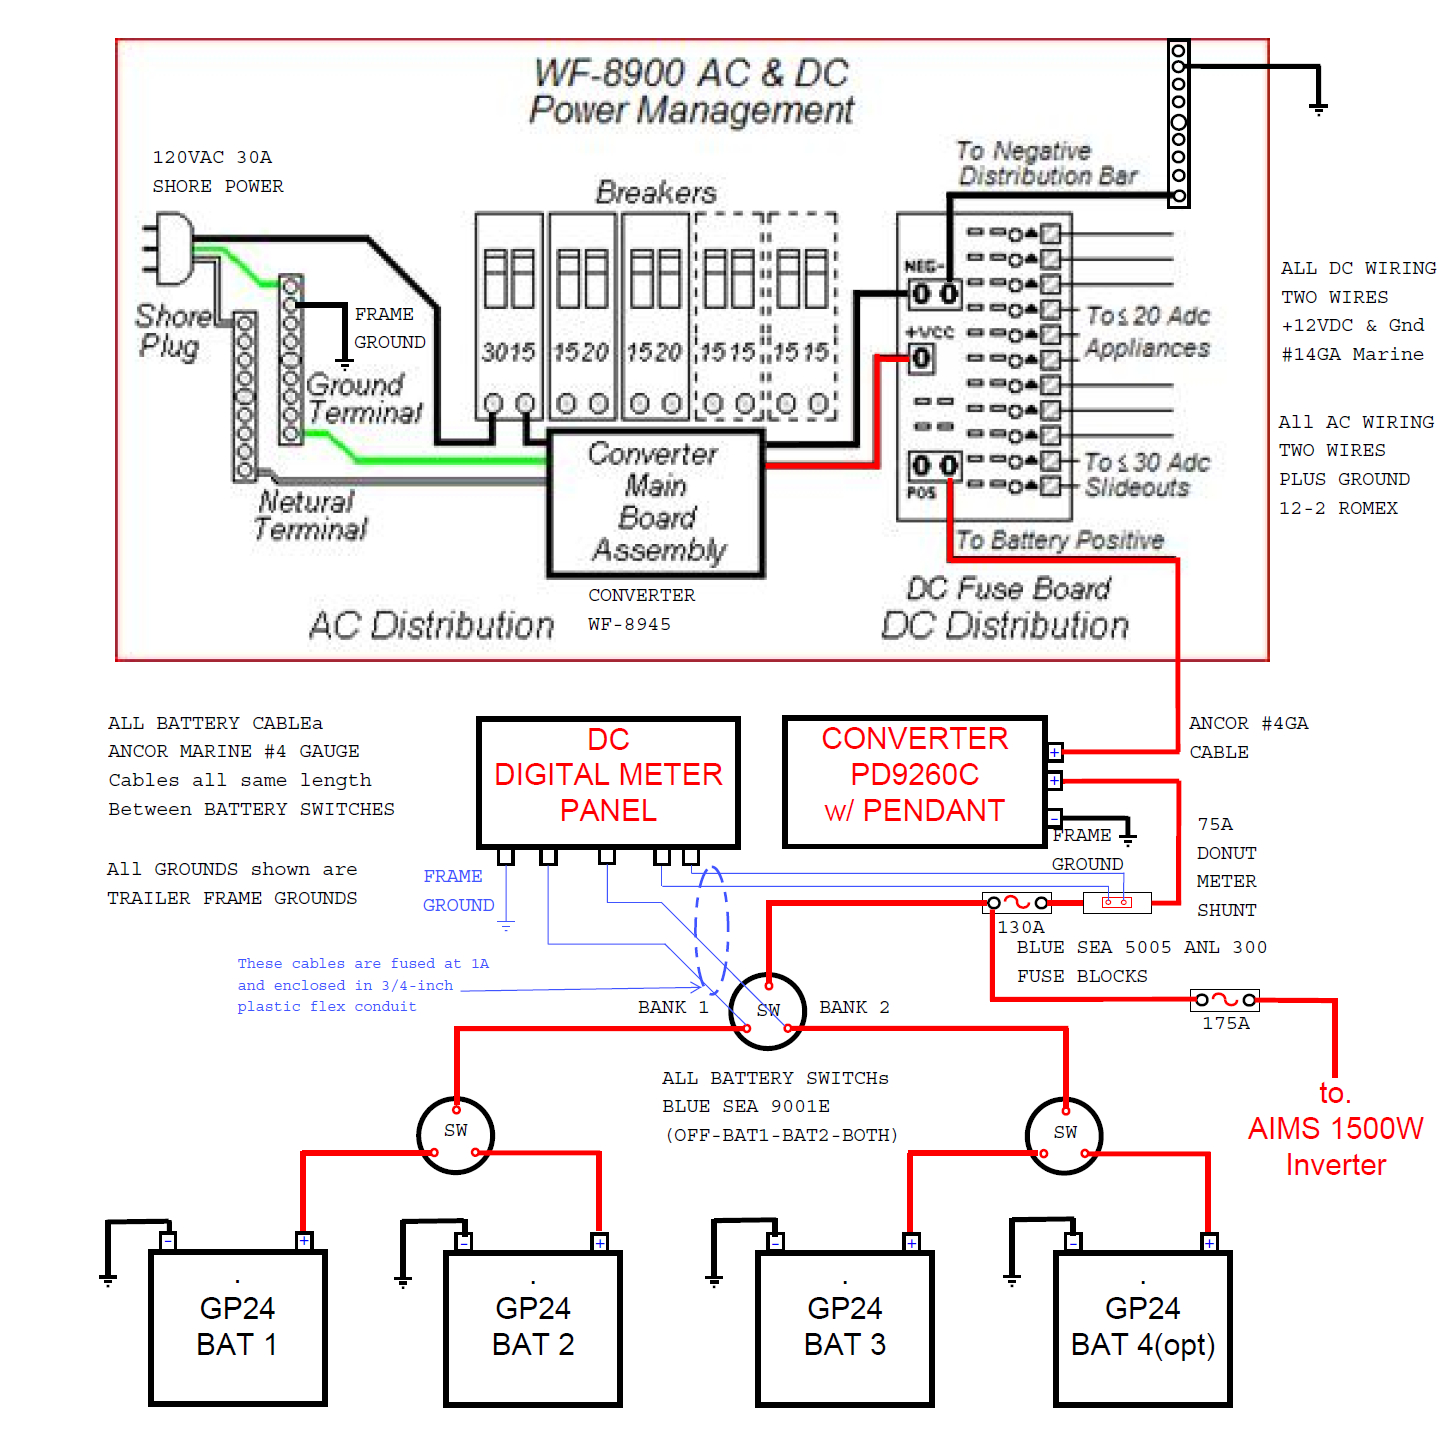 Rv Convertor Wiring Diagram - Freebootstrapthemes.co • - Rv Trailer Lights Wiring Diagram